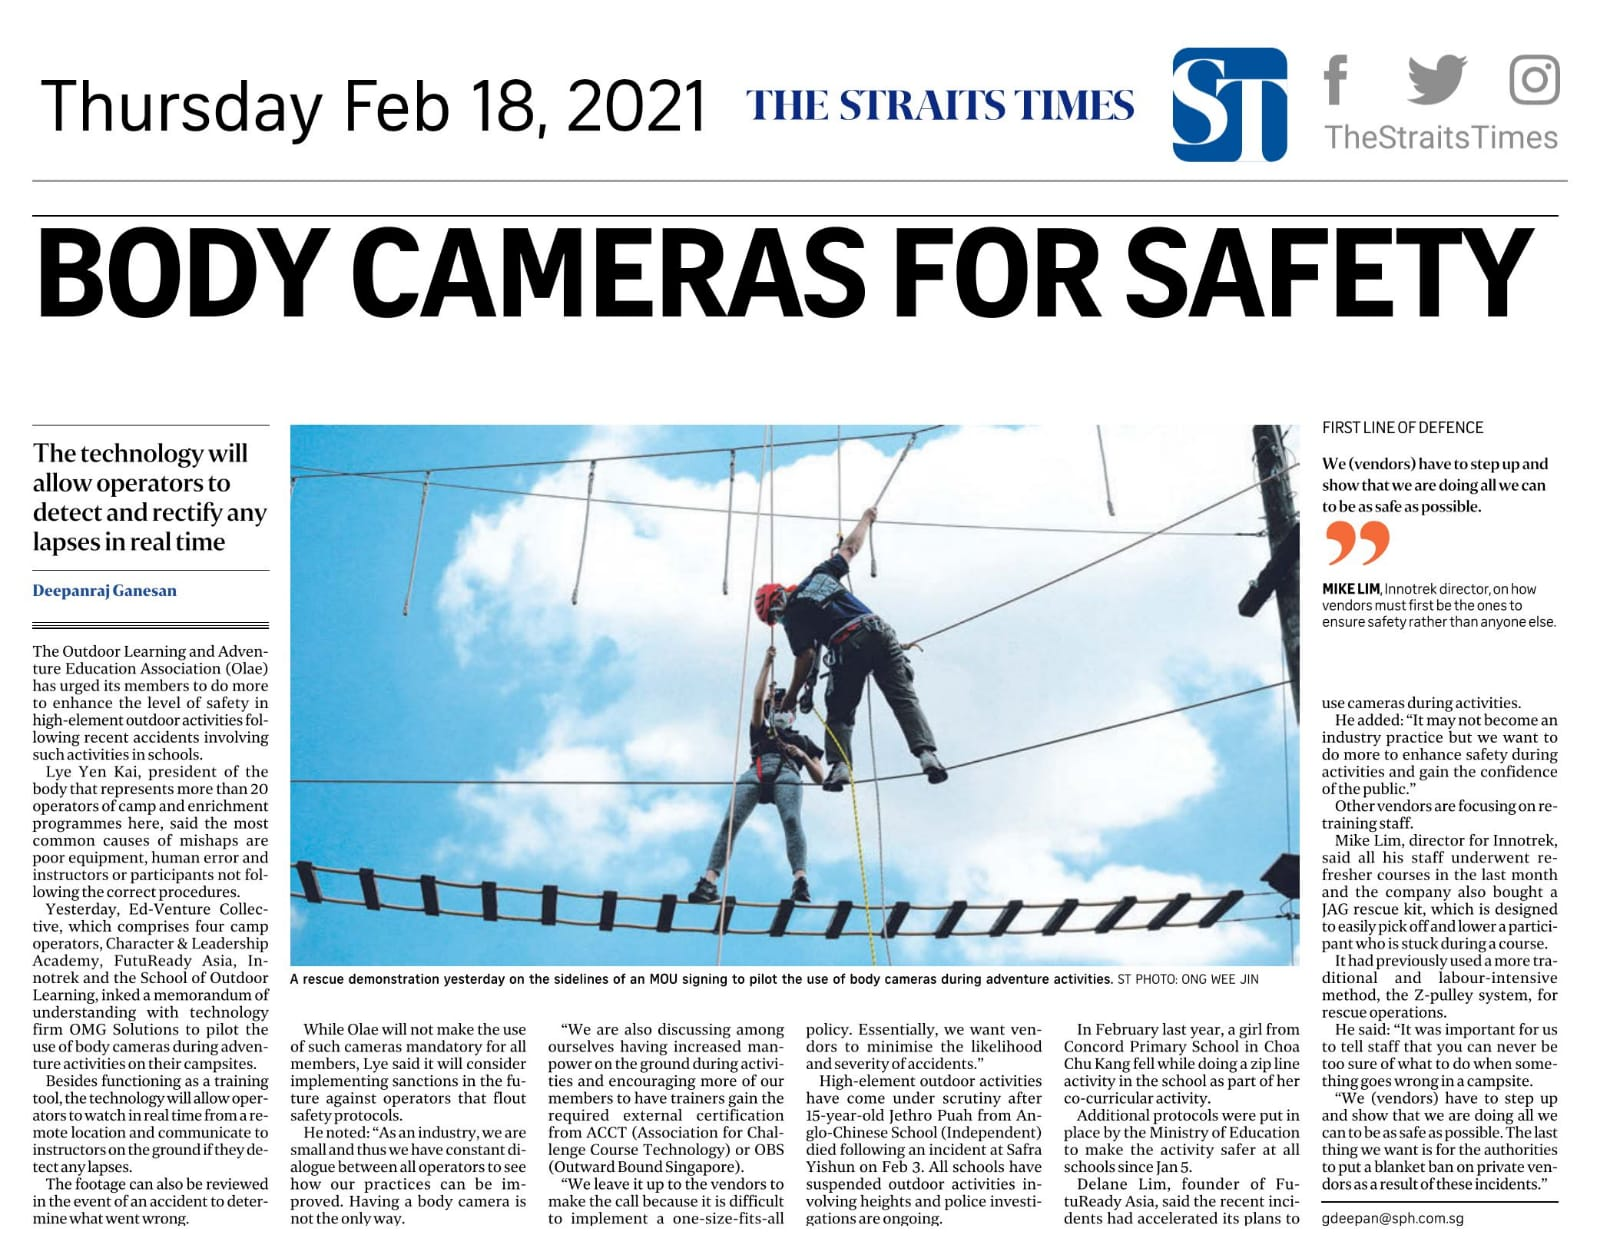 The Straits Times - Live Streaming Body Camera for Safety (Feb 8 2021) - Large